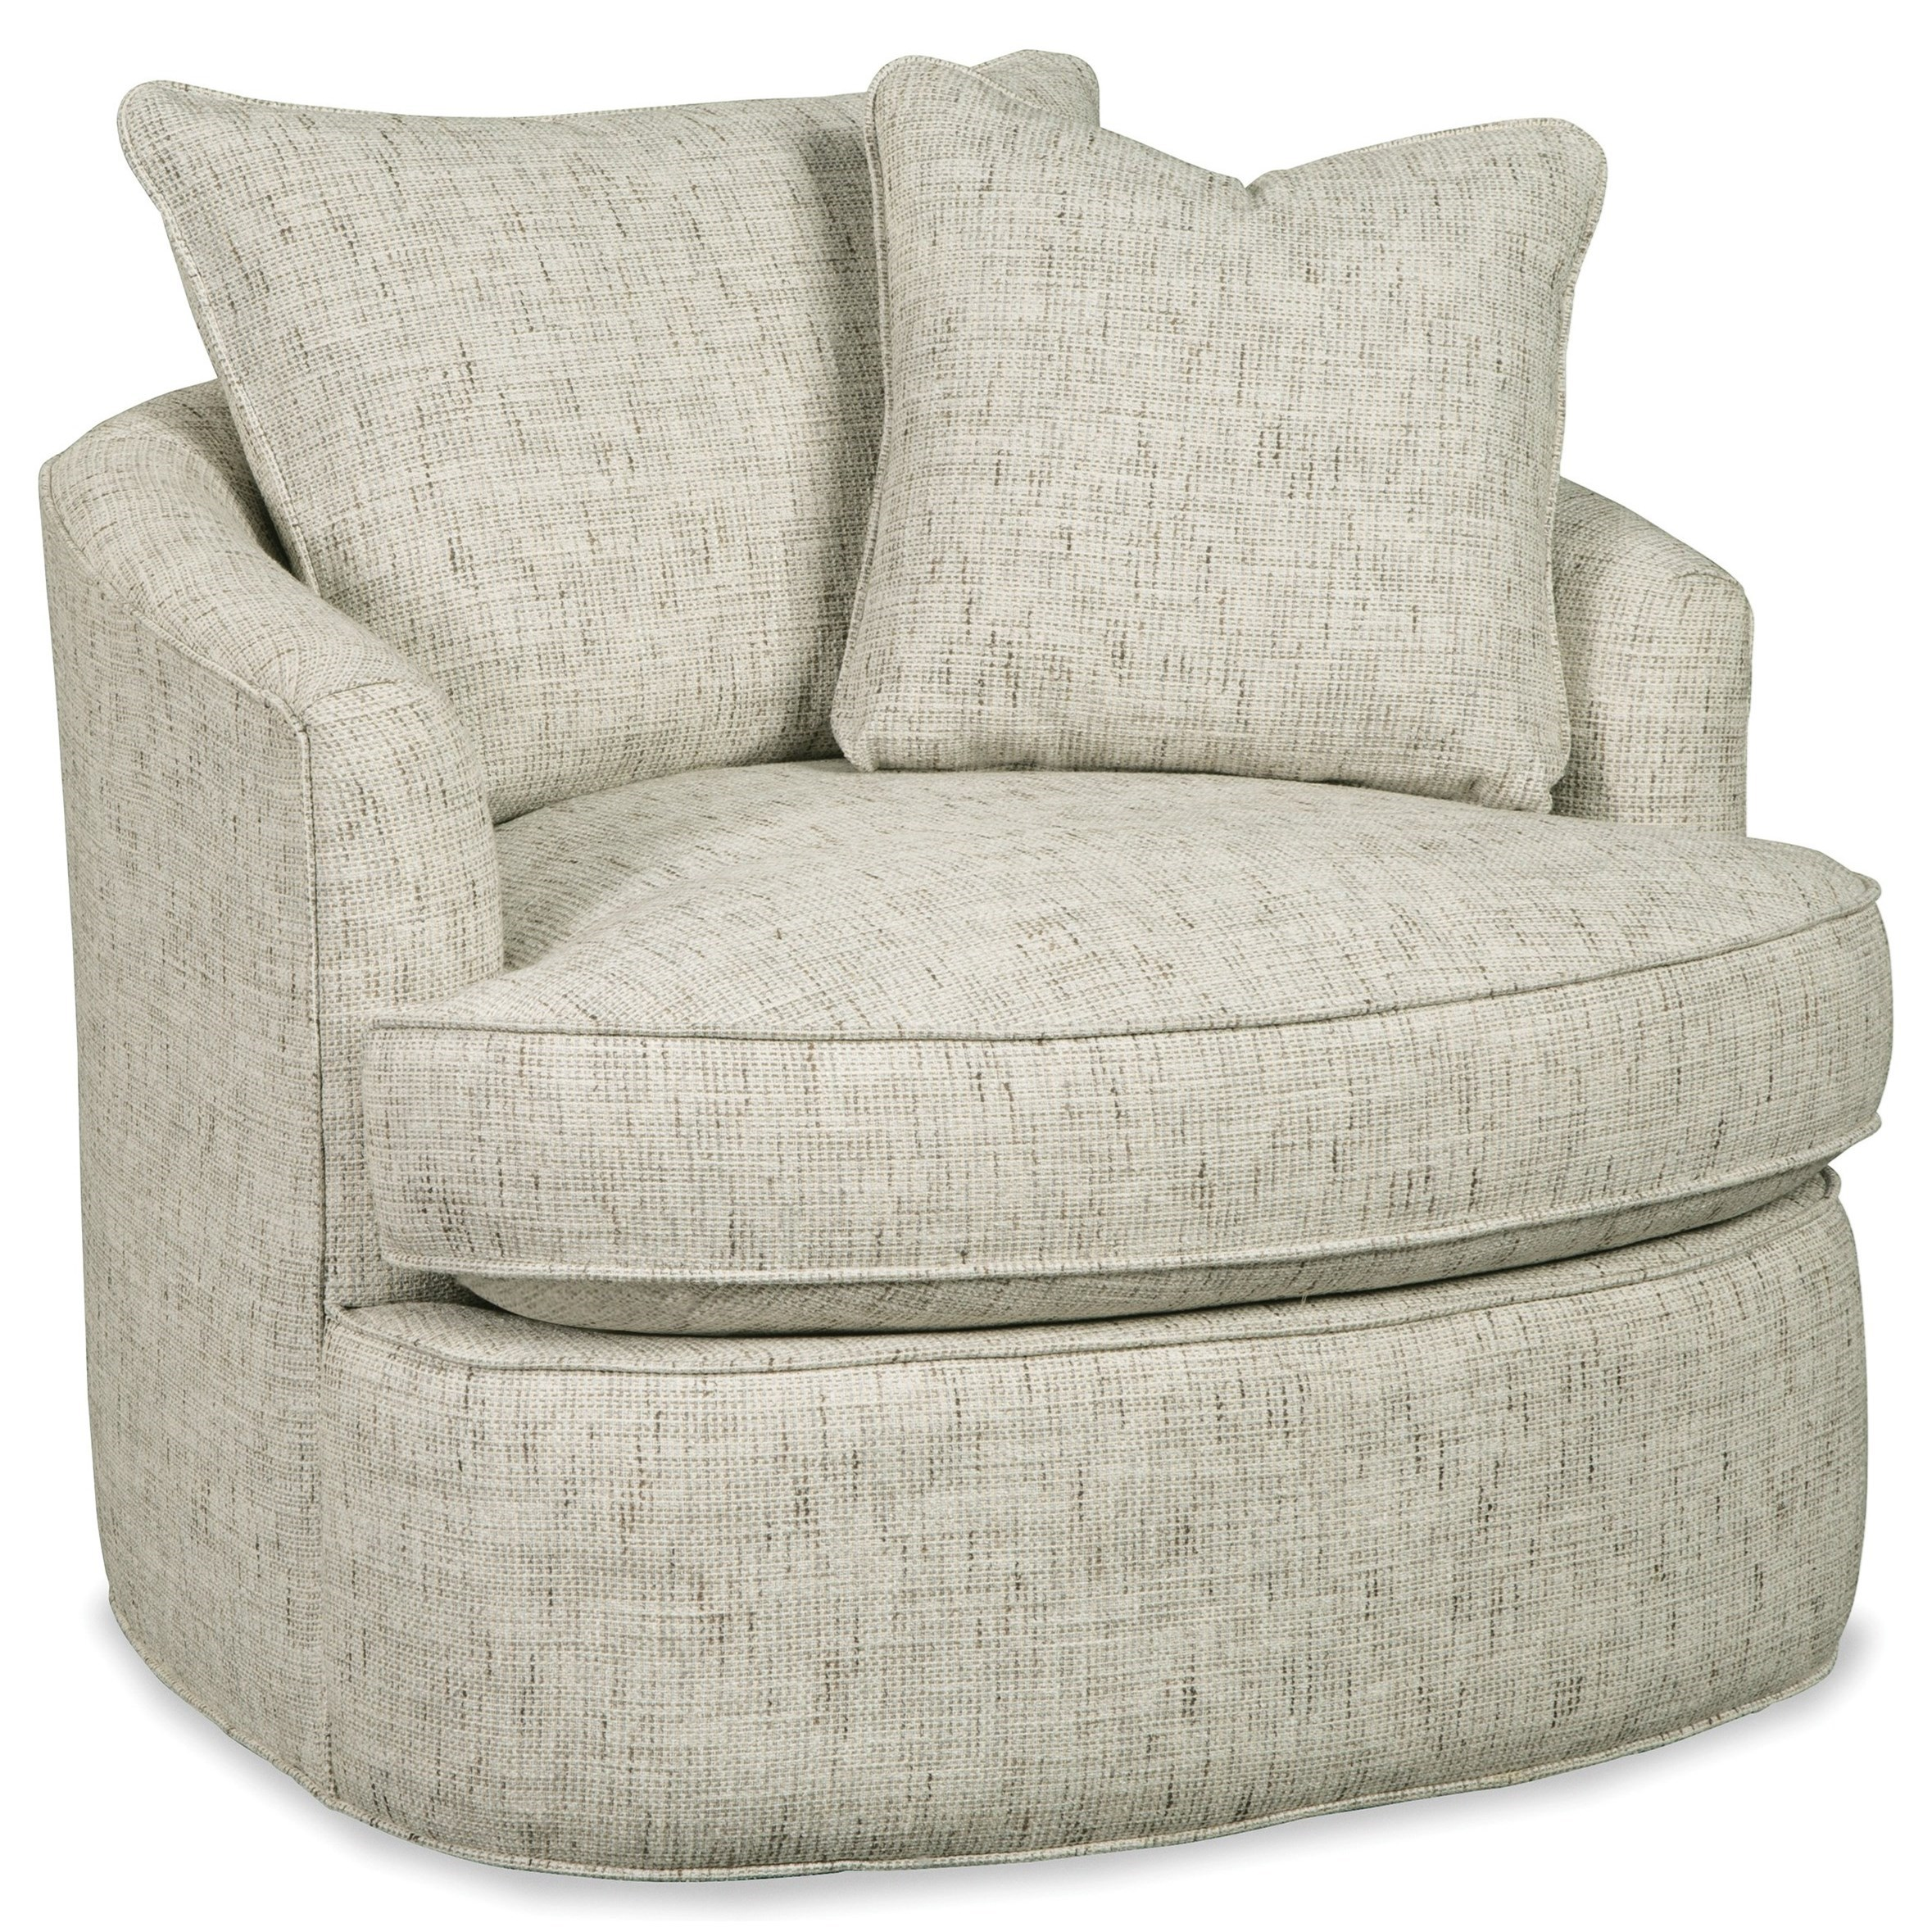 085710 Swivel Chair by Craftmaster at Prime Brothers Furniture